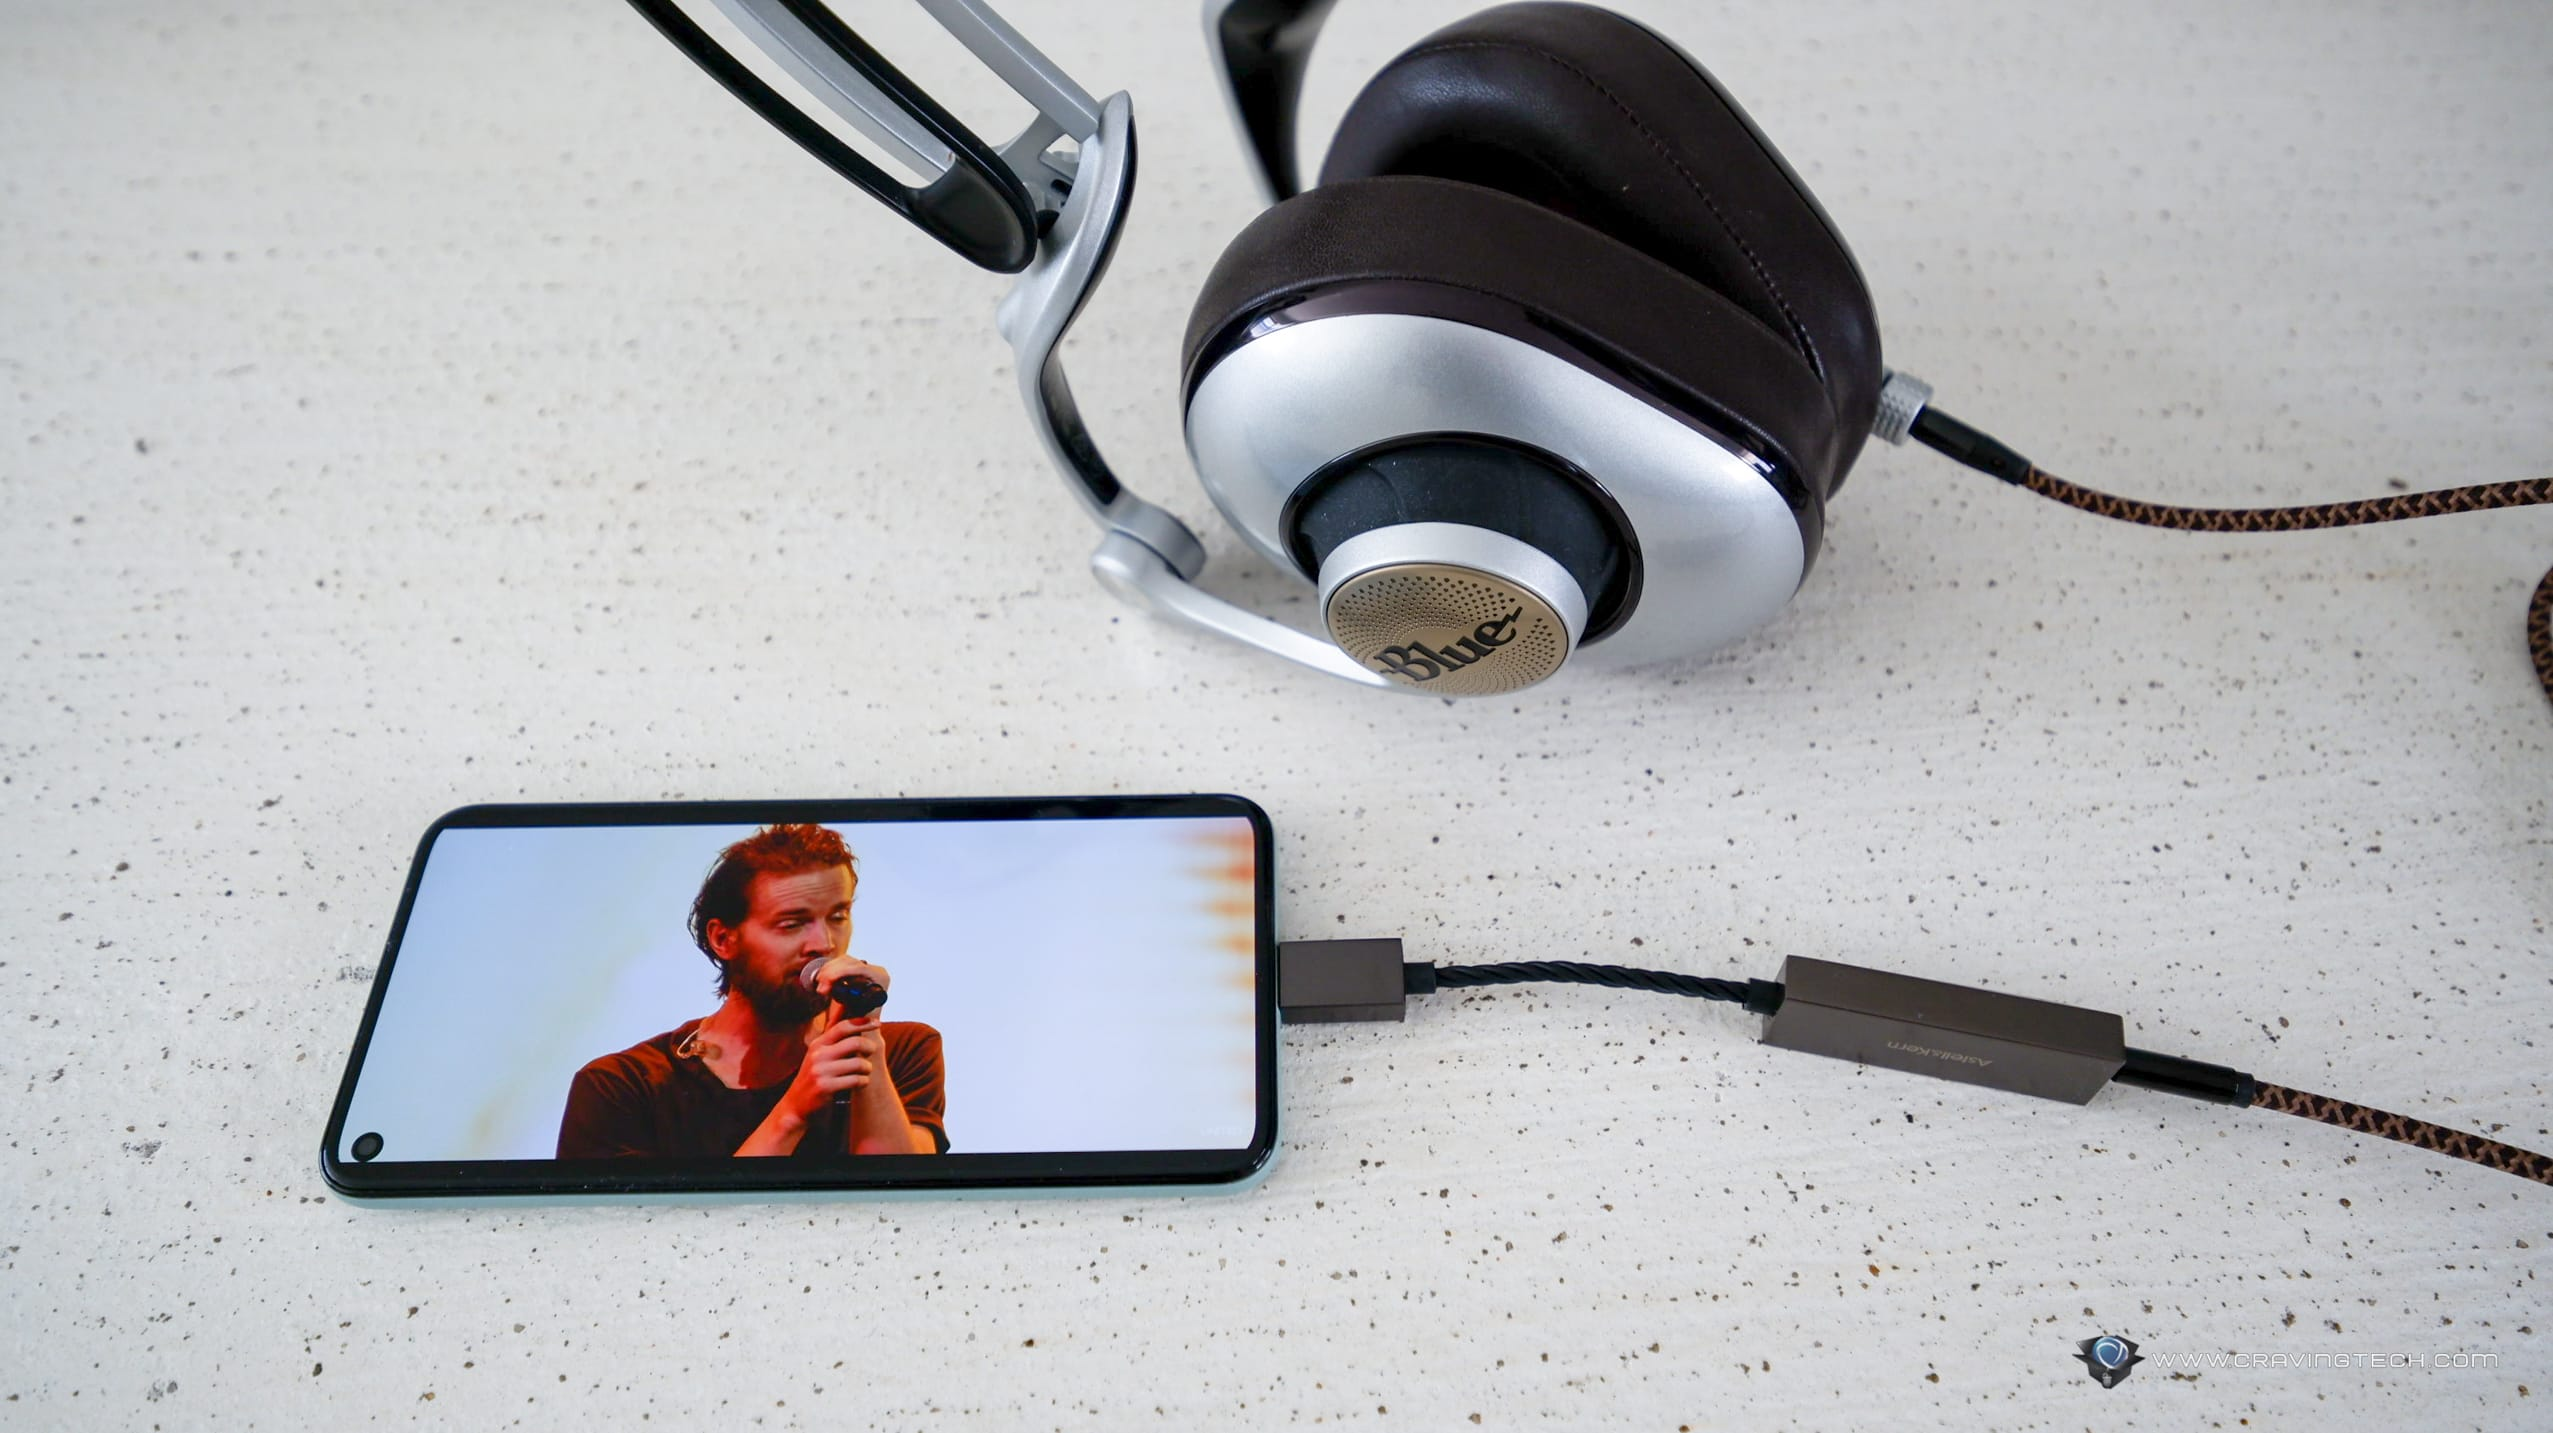 Upgrade your smartphone's audio to the next level with Astell&Kern USB-C Dual DAC Cable